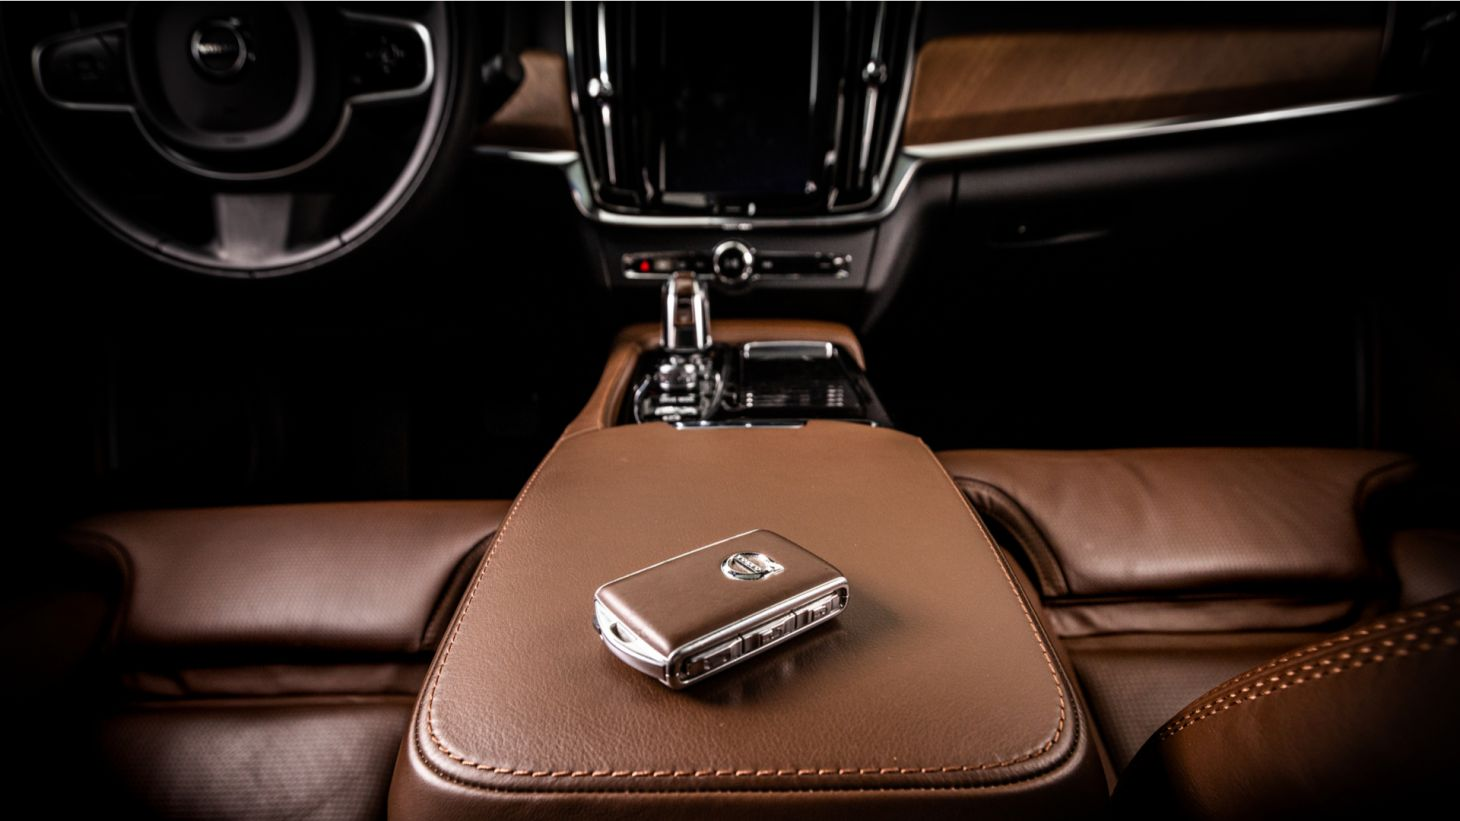 volvo care key chave do carro console apoio braco painel